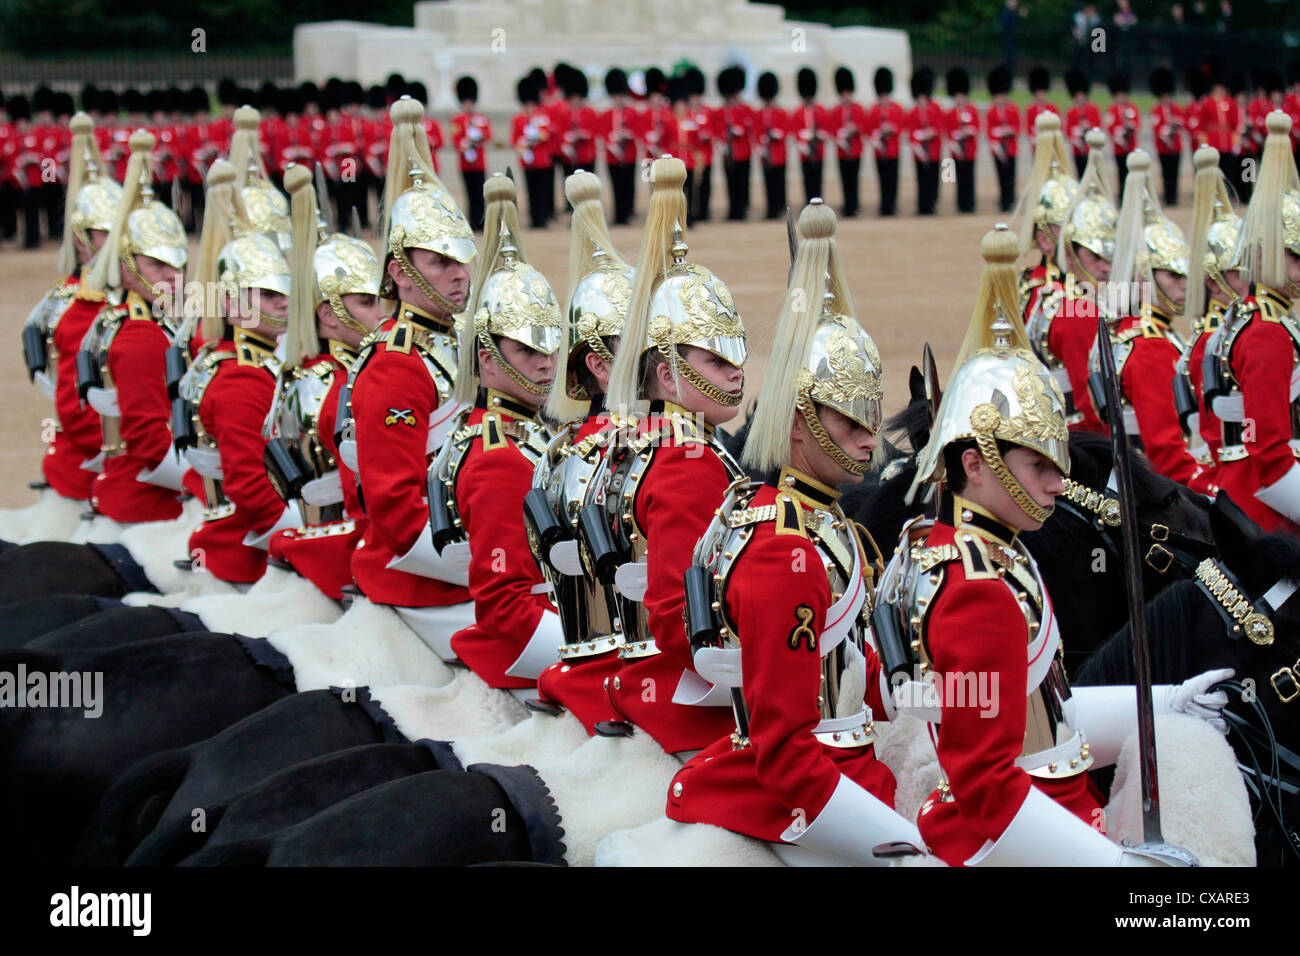 Soldiers at Trooping the Colour 2012, The Queen's Birthday Parade, Horse Guards, Whitehall, London, England, United Stock Photo